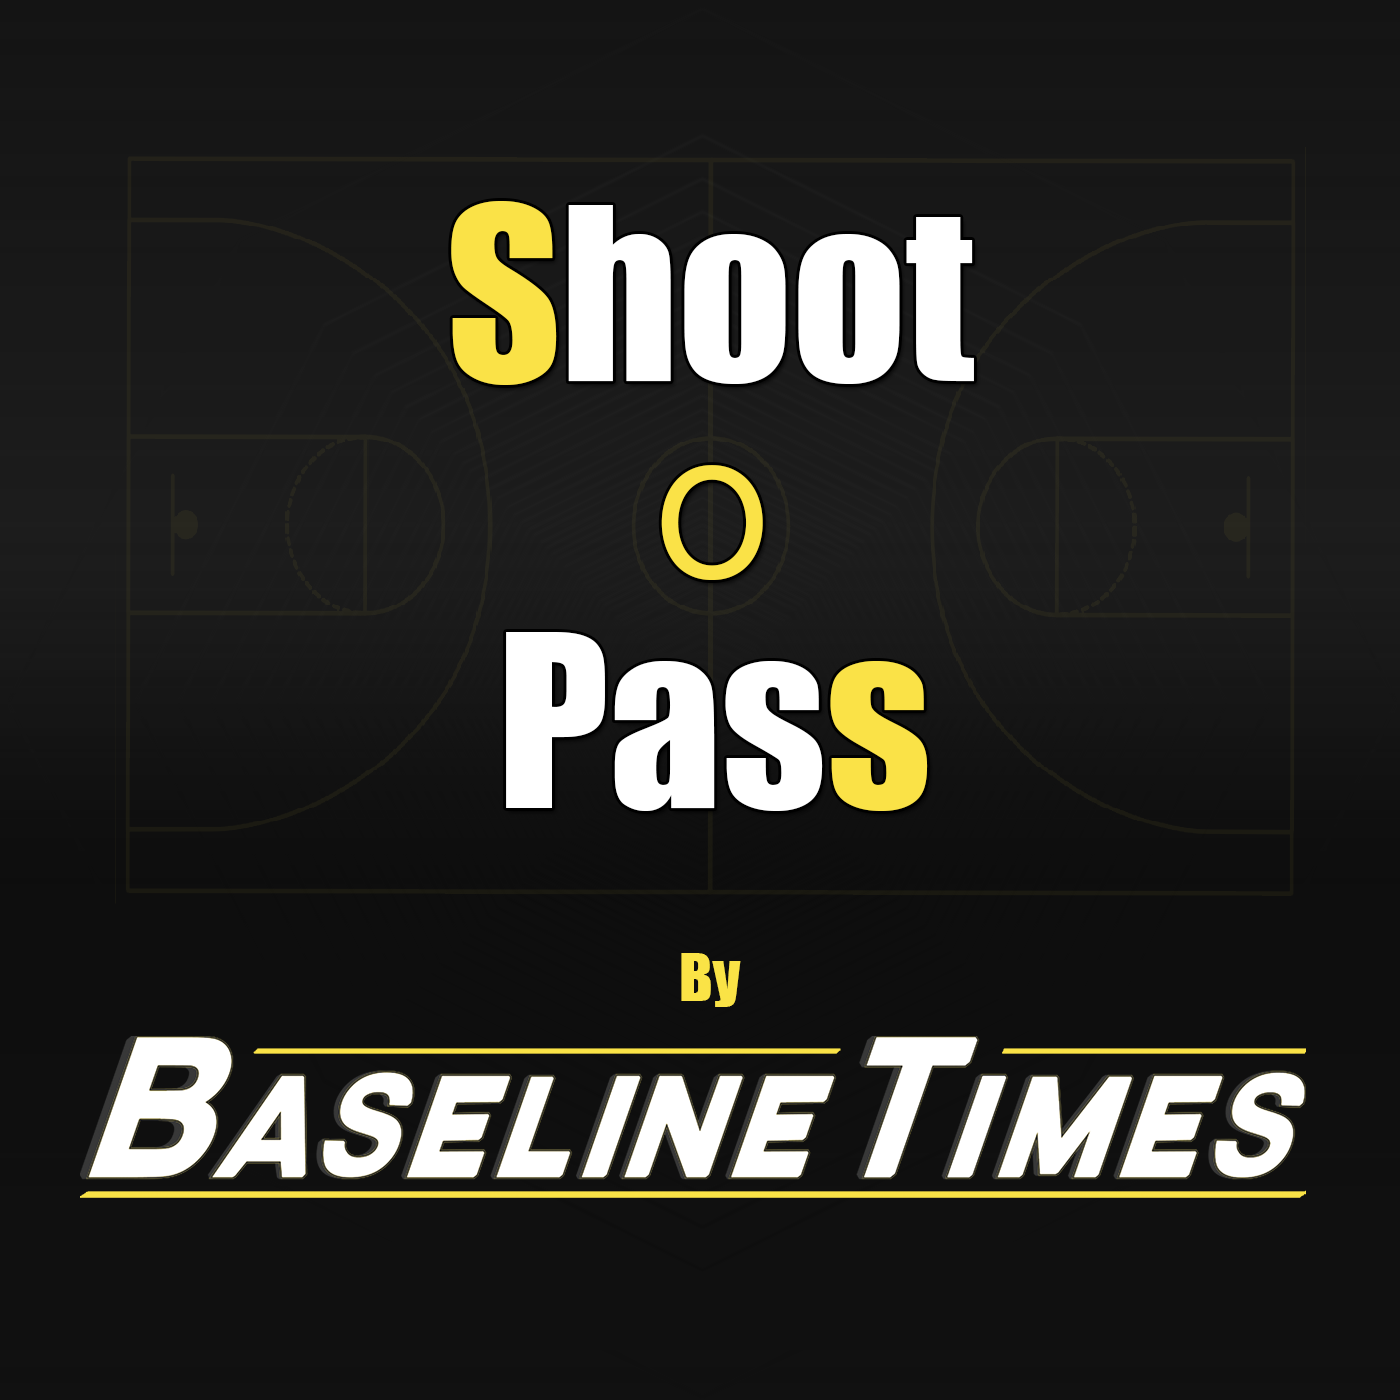 Shoot Or Pass Podcast - Episode 19: Brawlin', Overreaction in LA, and Early Surprises - Chevy and Markus reunite with DeMario in this episode to talk about the punches landed in LA. The crew discusses if Chris Paul truly should be considered a bad teammate. The guys share if the Lakers start should be considered a sign of bad things to come or just a bit more patience needed. They also share a few their early surprises and overreactions from the first week of the 2018-2019 NBA Season. (Warning: Explicit language)